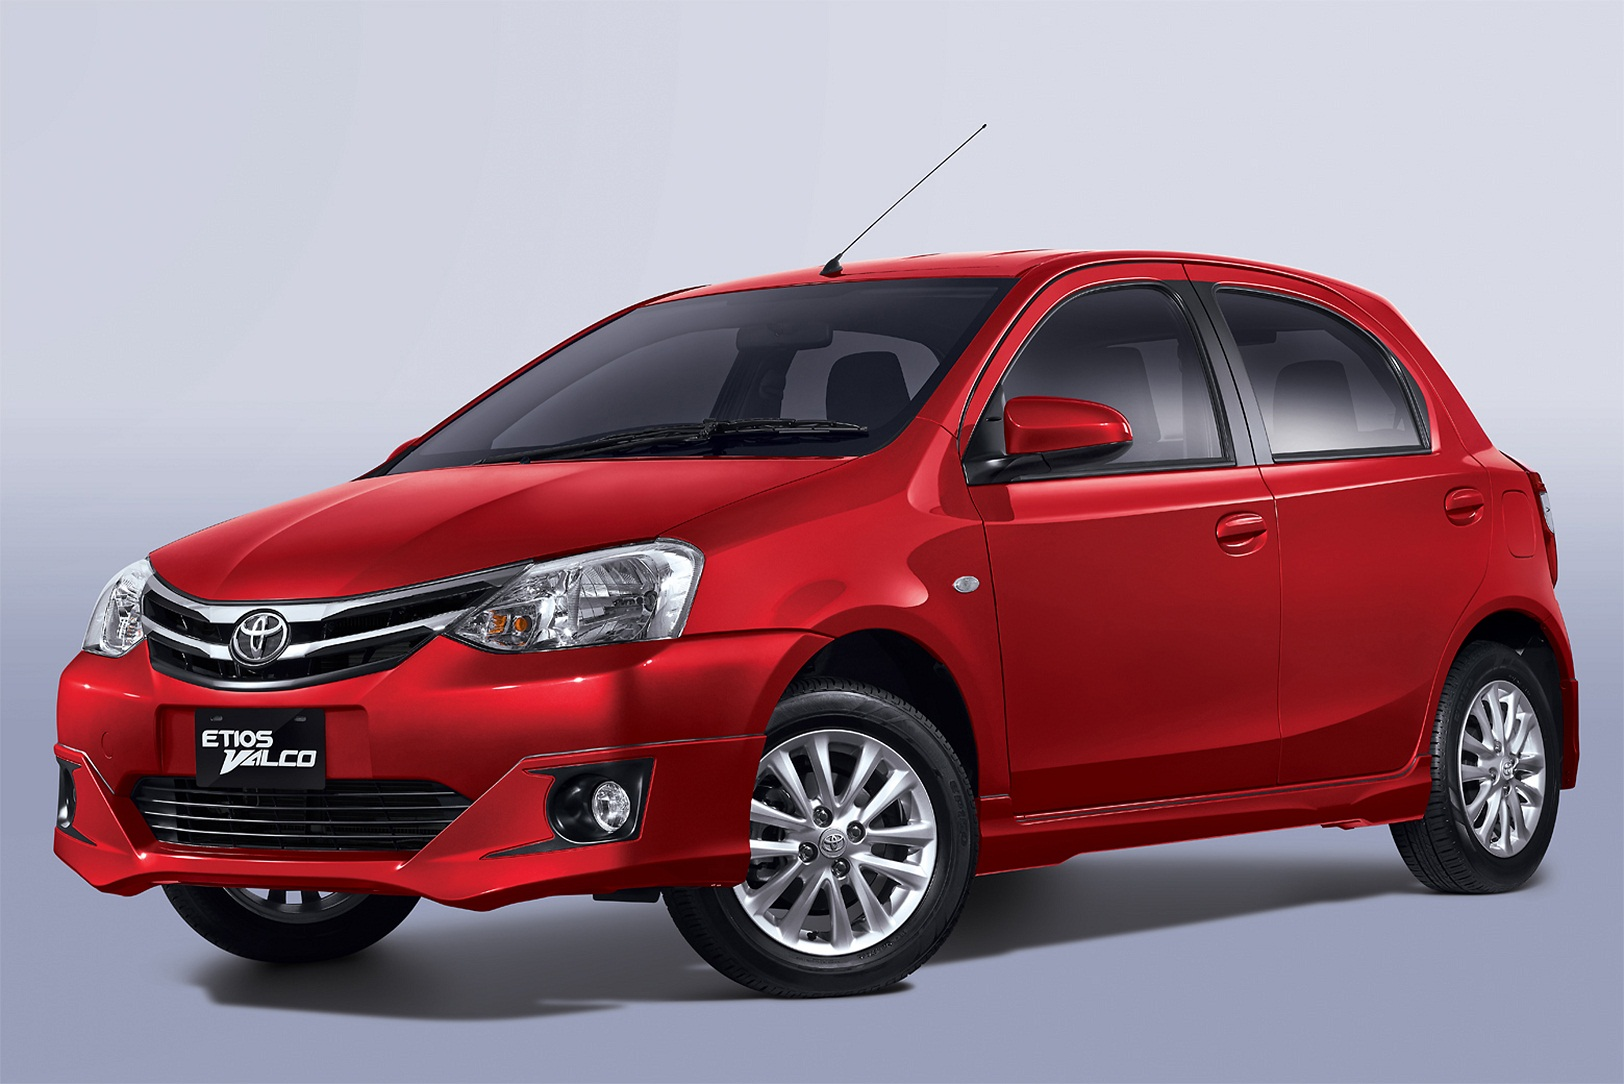 Toyota Etios Valco Refreshed In Indonesia